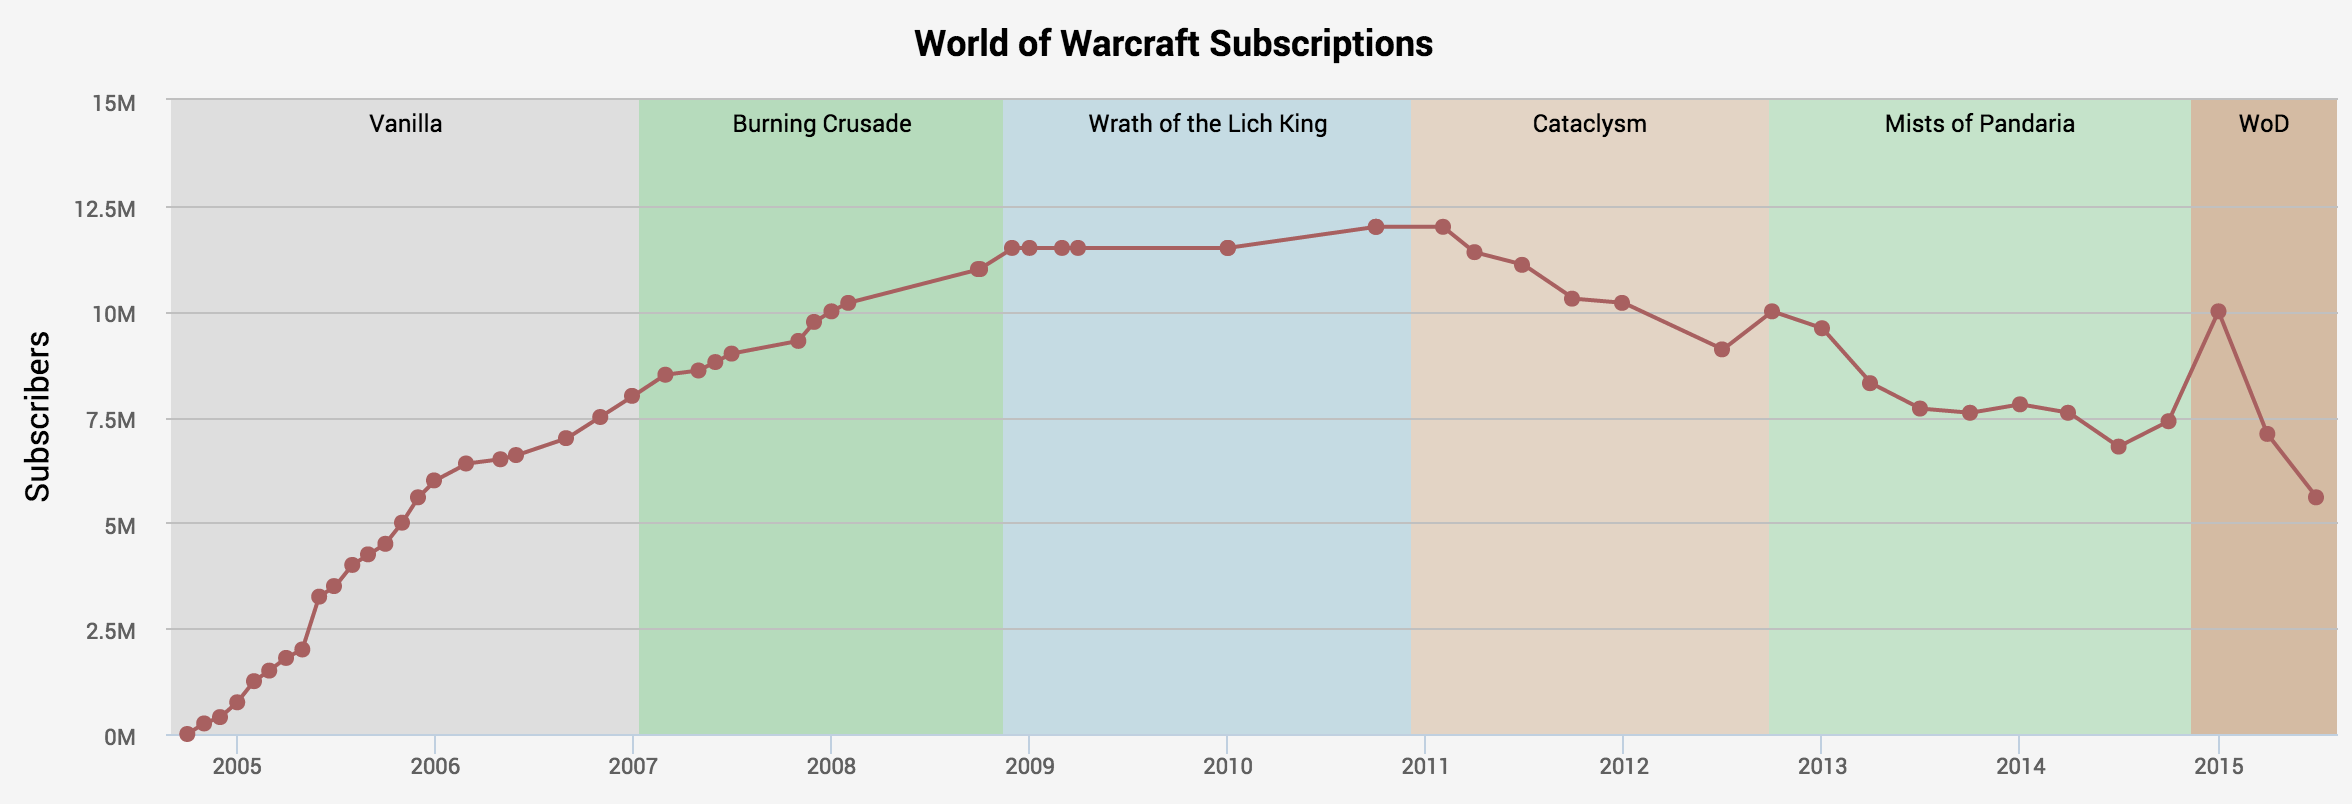 wow-subscriptions-historical-2005-2015.p